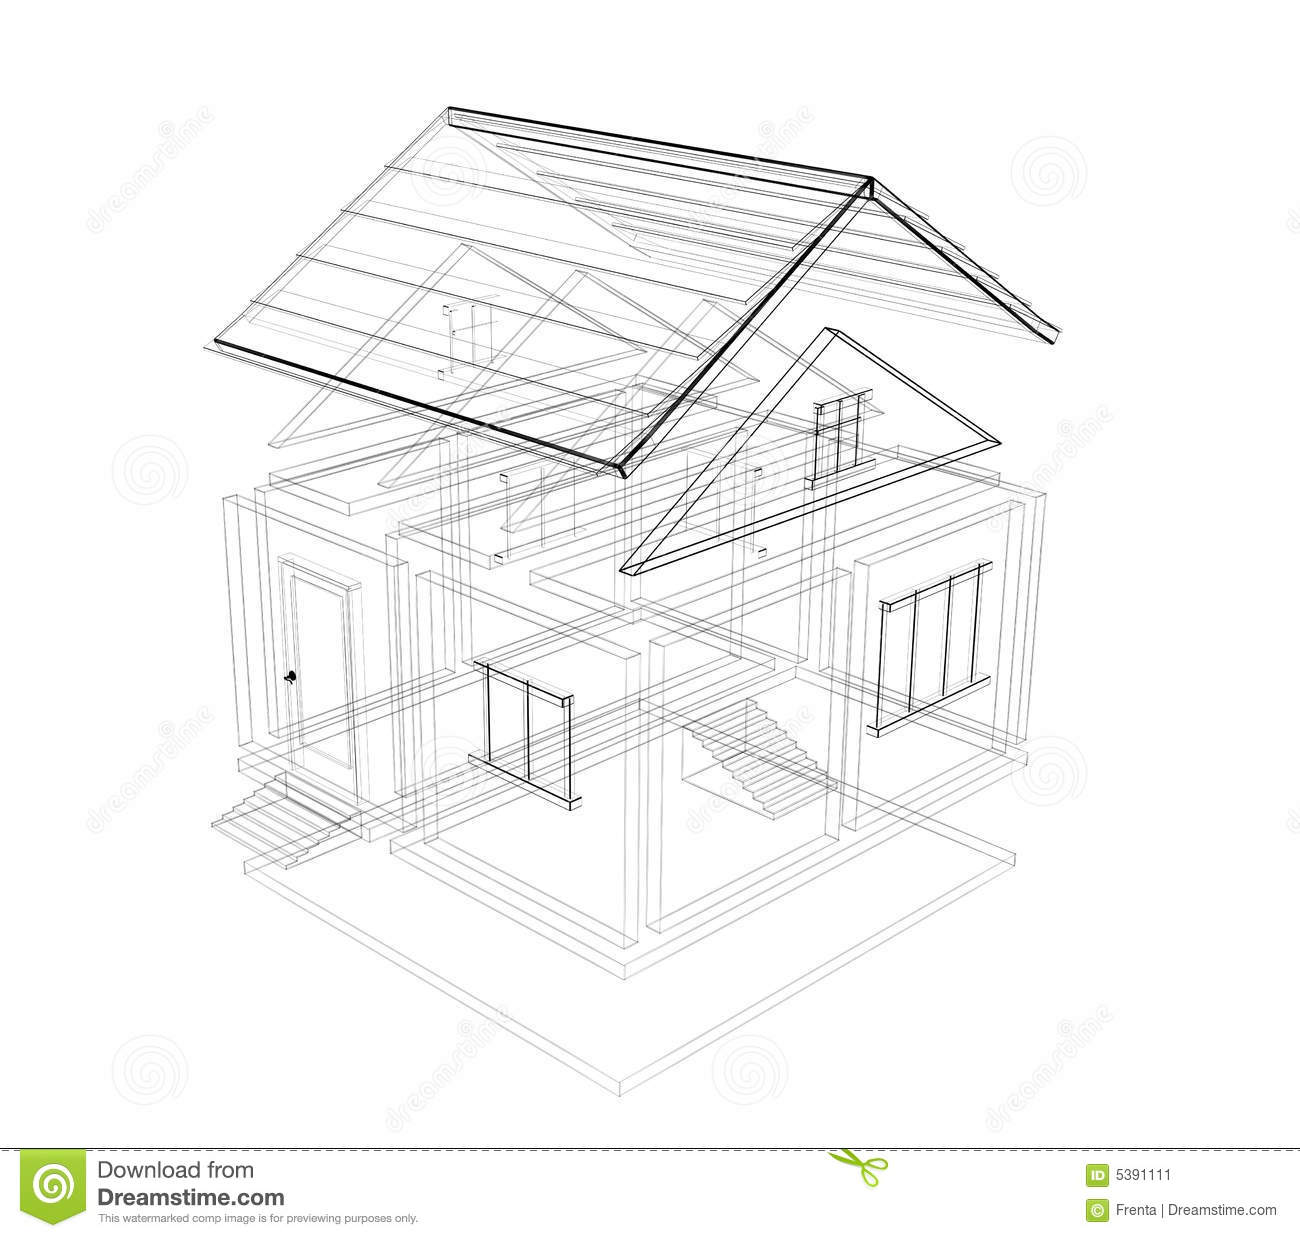 3d sketch of a house stock illustration. Illustration of